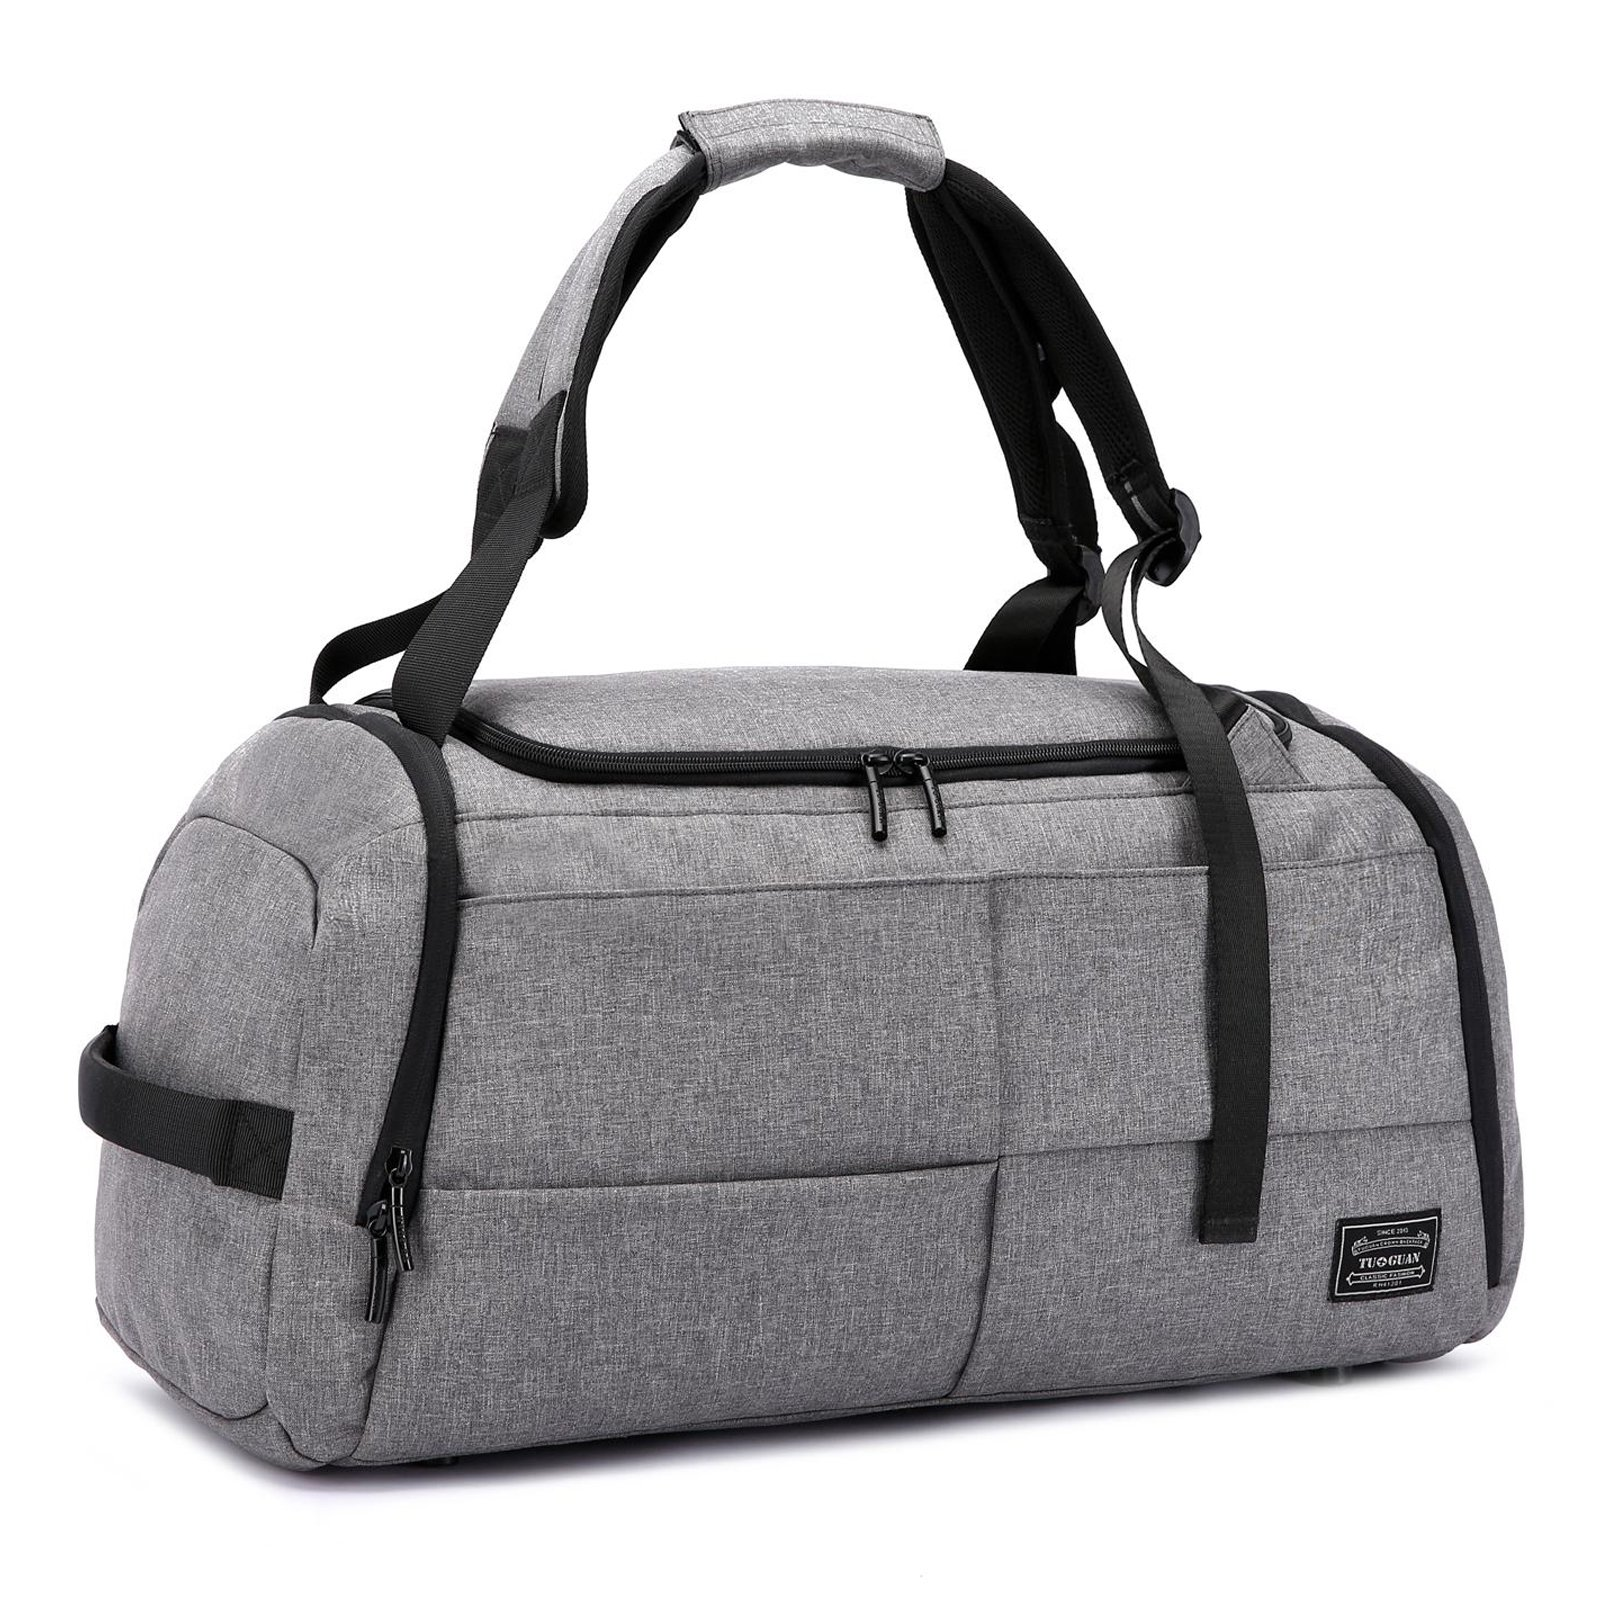 3 Way Gym Sports Bag with Shoe Copartment Foldable Travel Duffel Backpack Canvas Holdall for Men Women